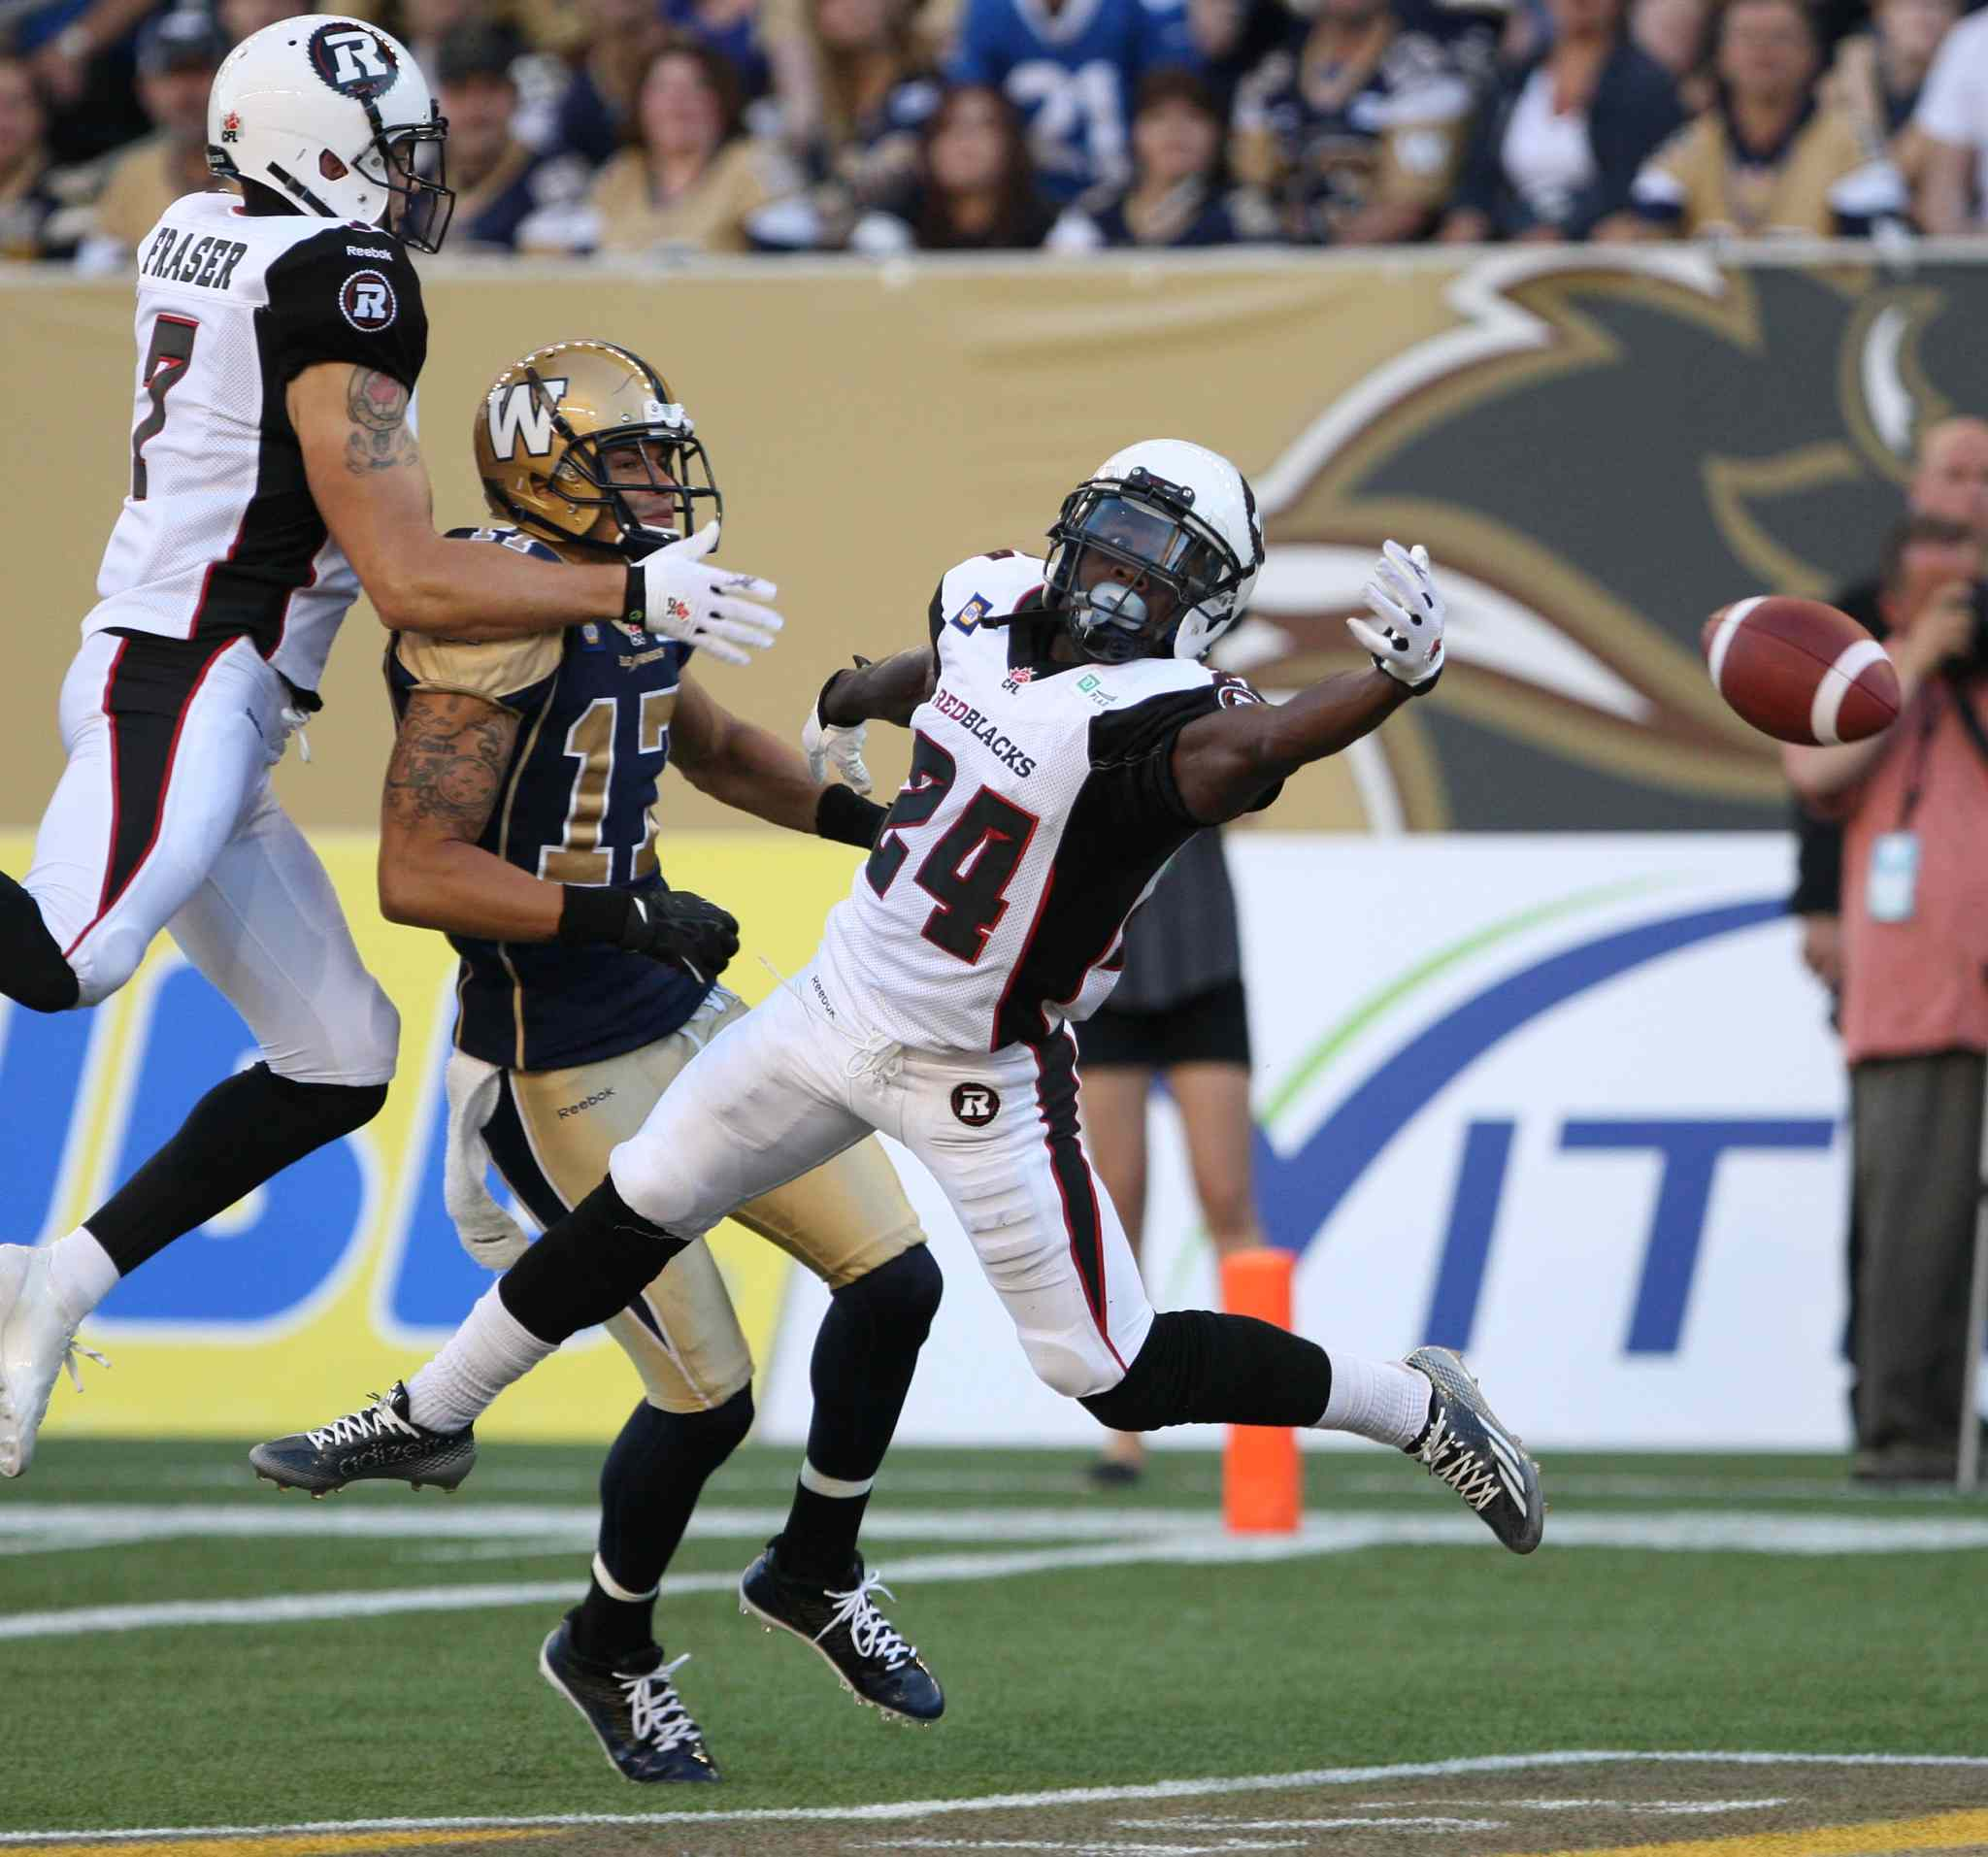 Winnipeg Blue Bombers' Nick Moore is surrounded by Ottawa Redblacks' Eric Frazer, left, and Jerell Gavins in the end zone during first half of Winnipeg's game.